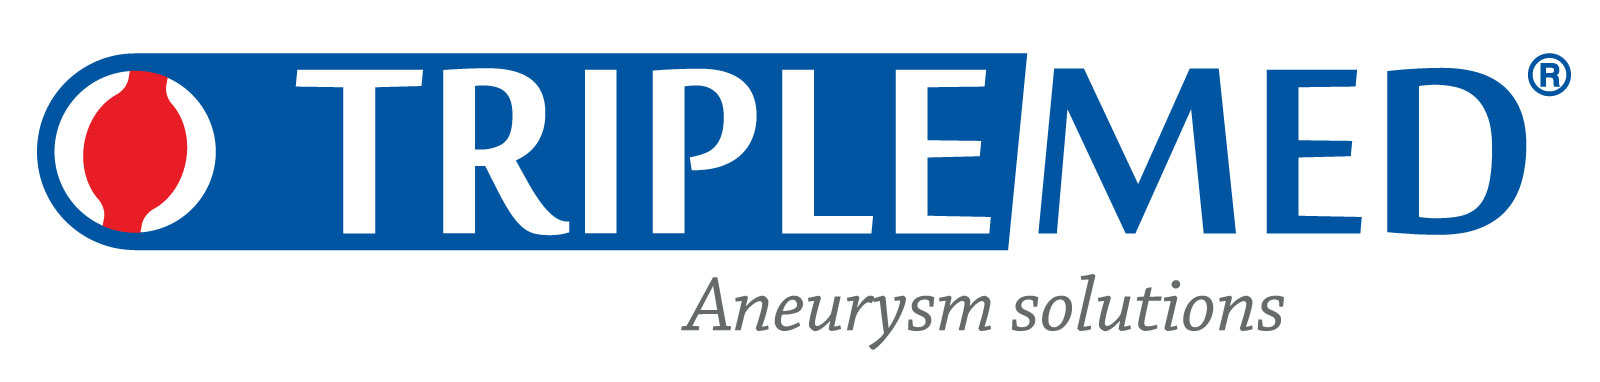 logo TripleMed